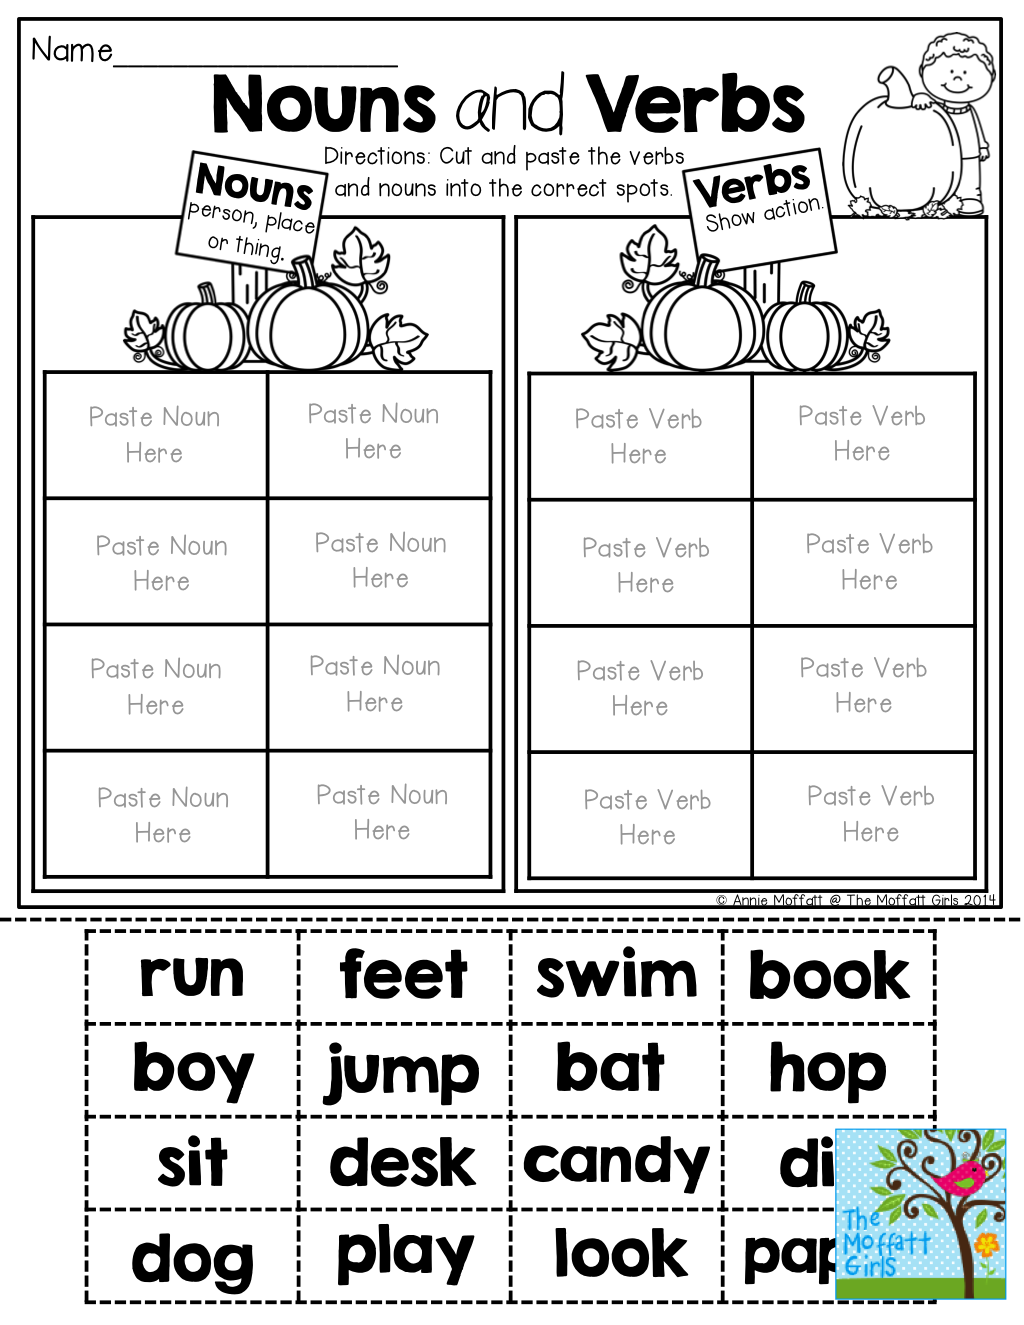 Nouns and Verbs (sorting) TONS of fun printables! | WRITE ...